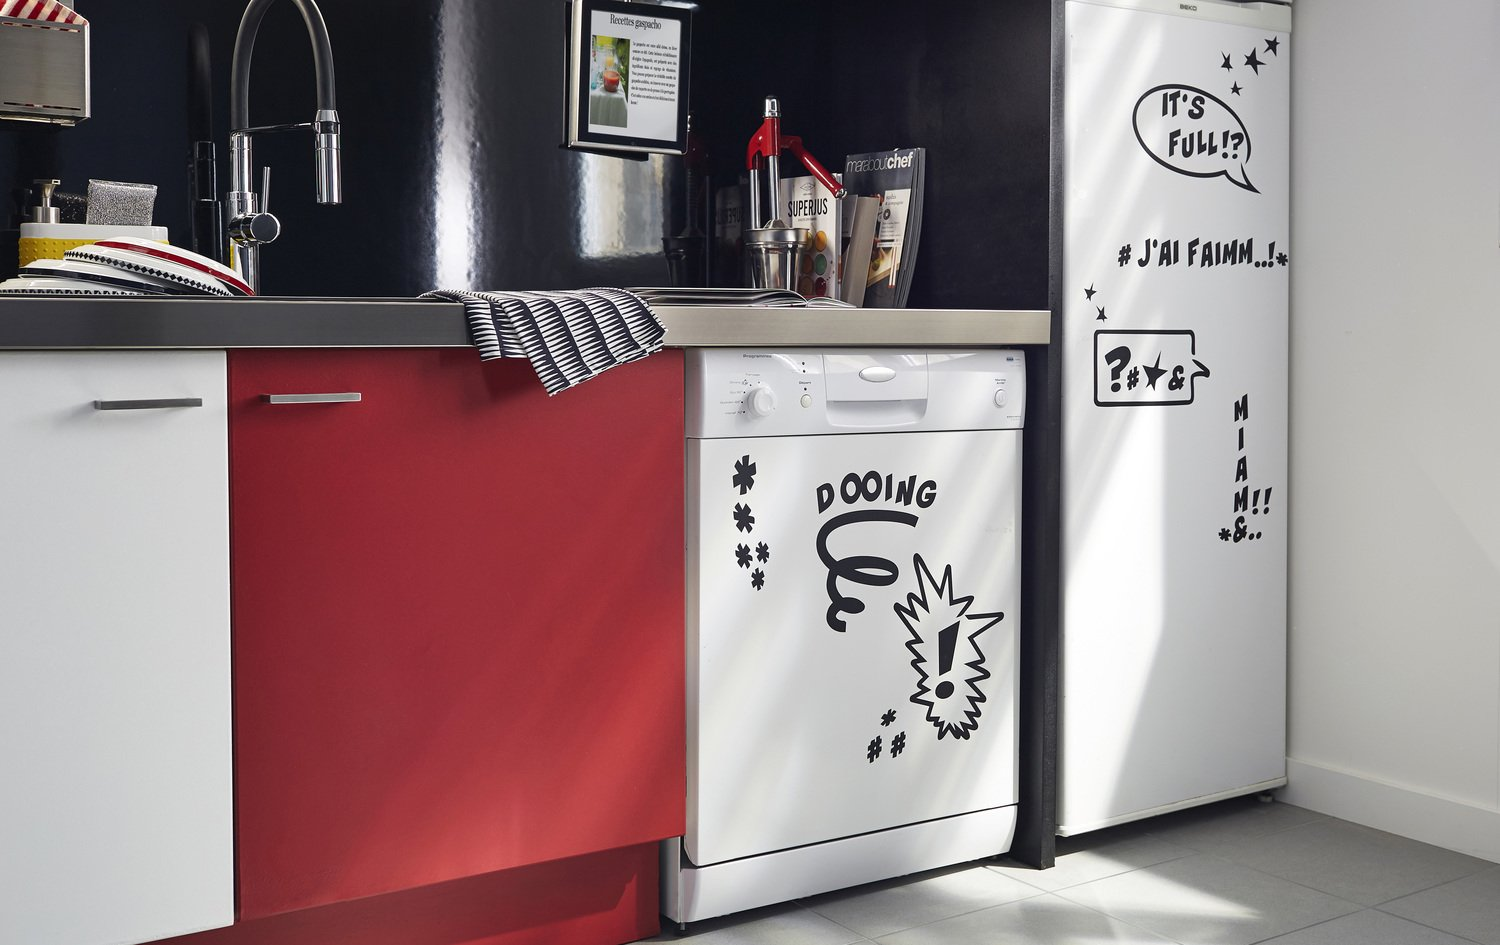 d corer les meubles de cuisine avec des stickers originaux leroy merlin. Black Bedroom Furniture Sets. Home Design Ideas